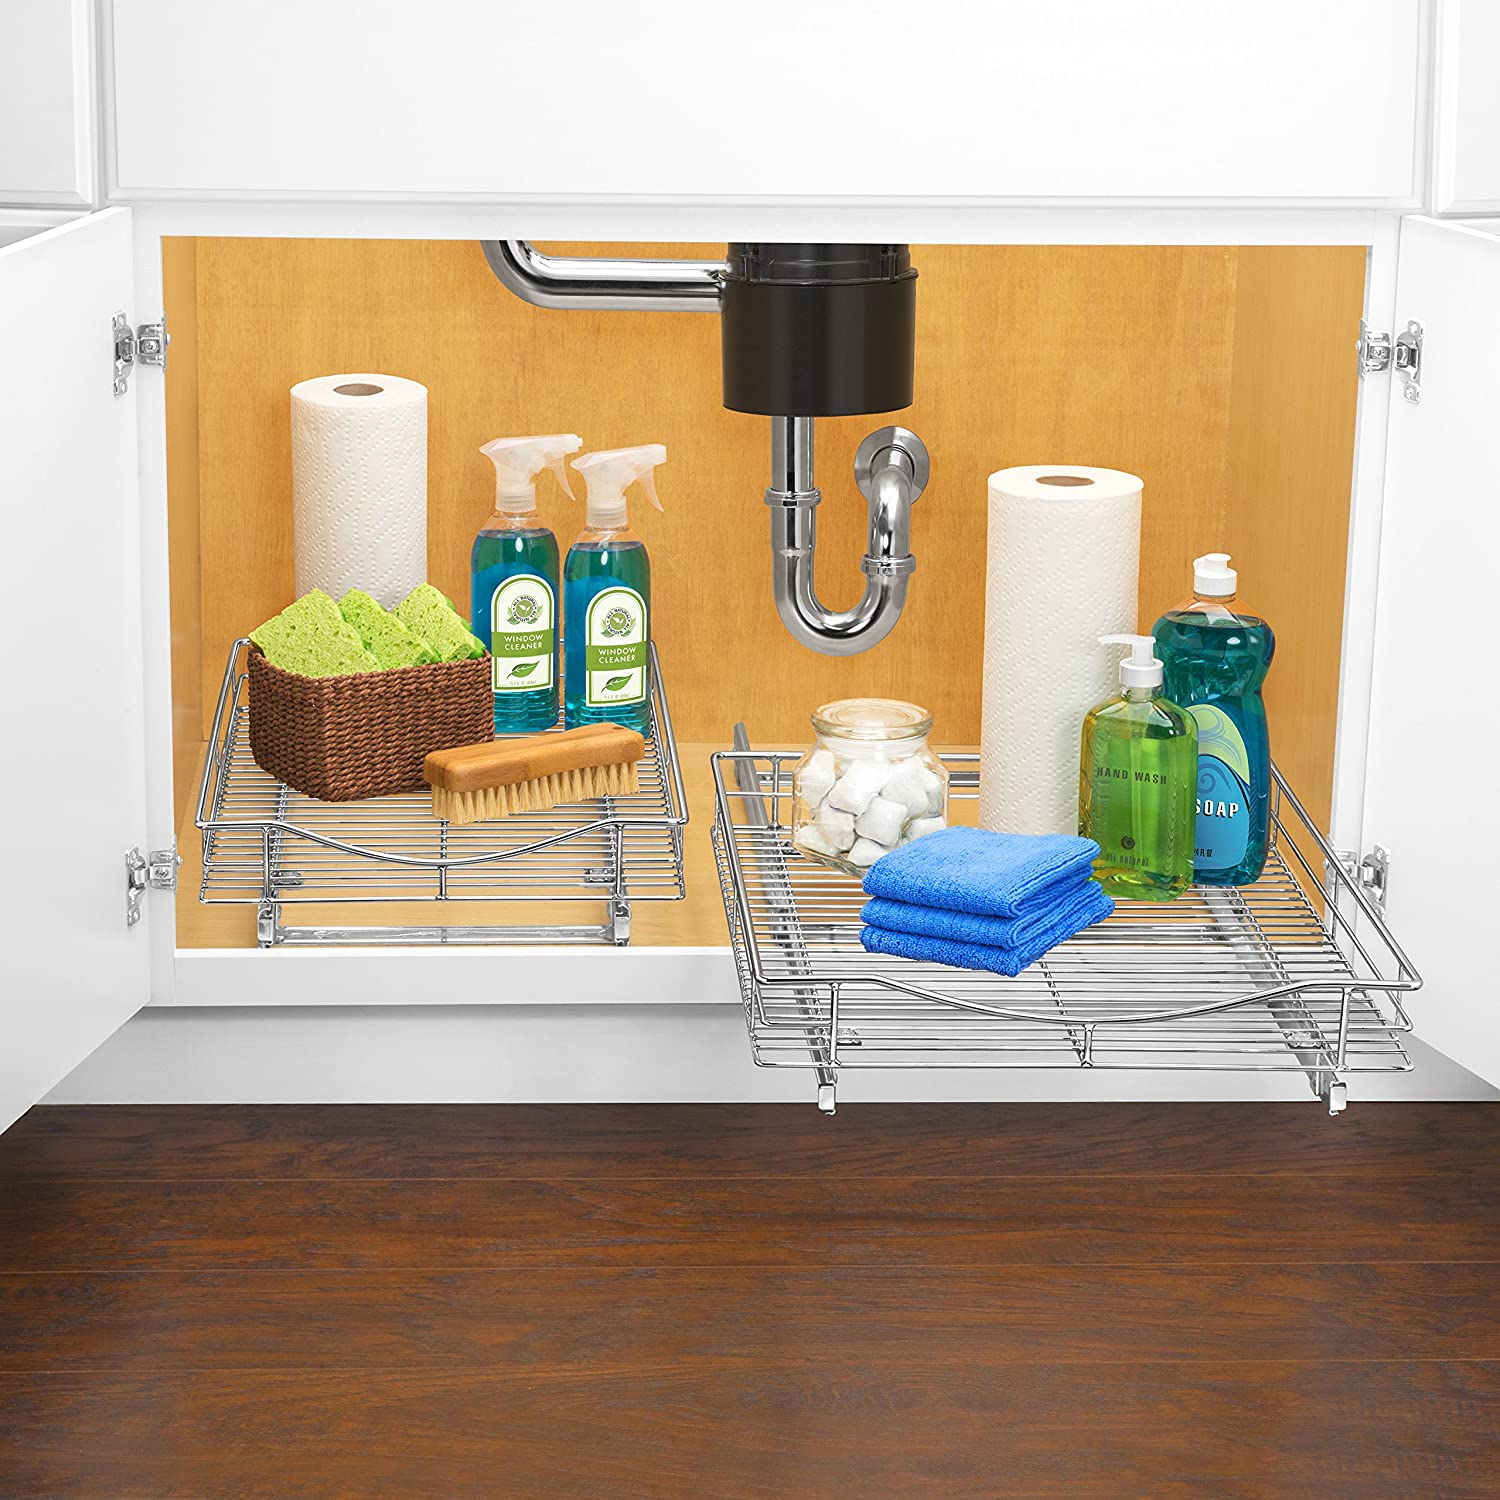 Lynk roll out under sink cabinet organizer pull out two tier sliding - Lynk Professional Roll Out Cabinet Organizer Pull Out Under Cabinet Sliding Shelf 14 Inch Wide X 21 Inch Deep Chrome Amazon Ca Home Kitchen